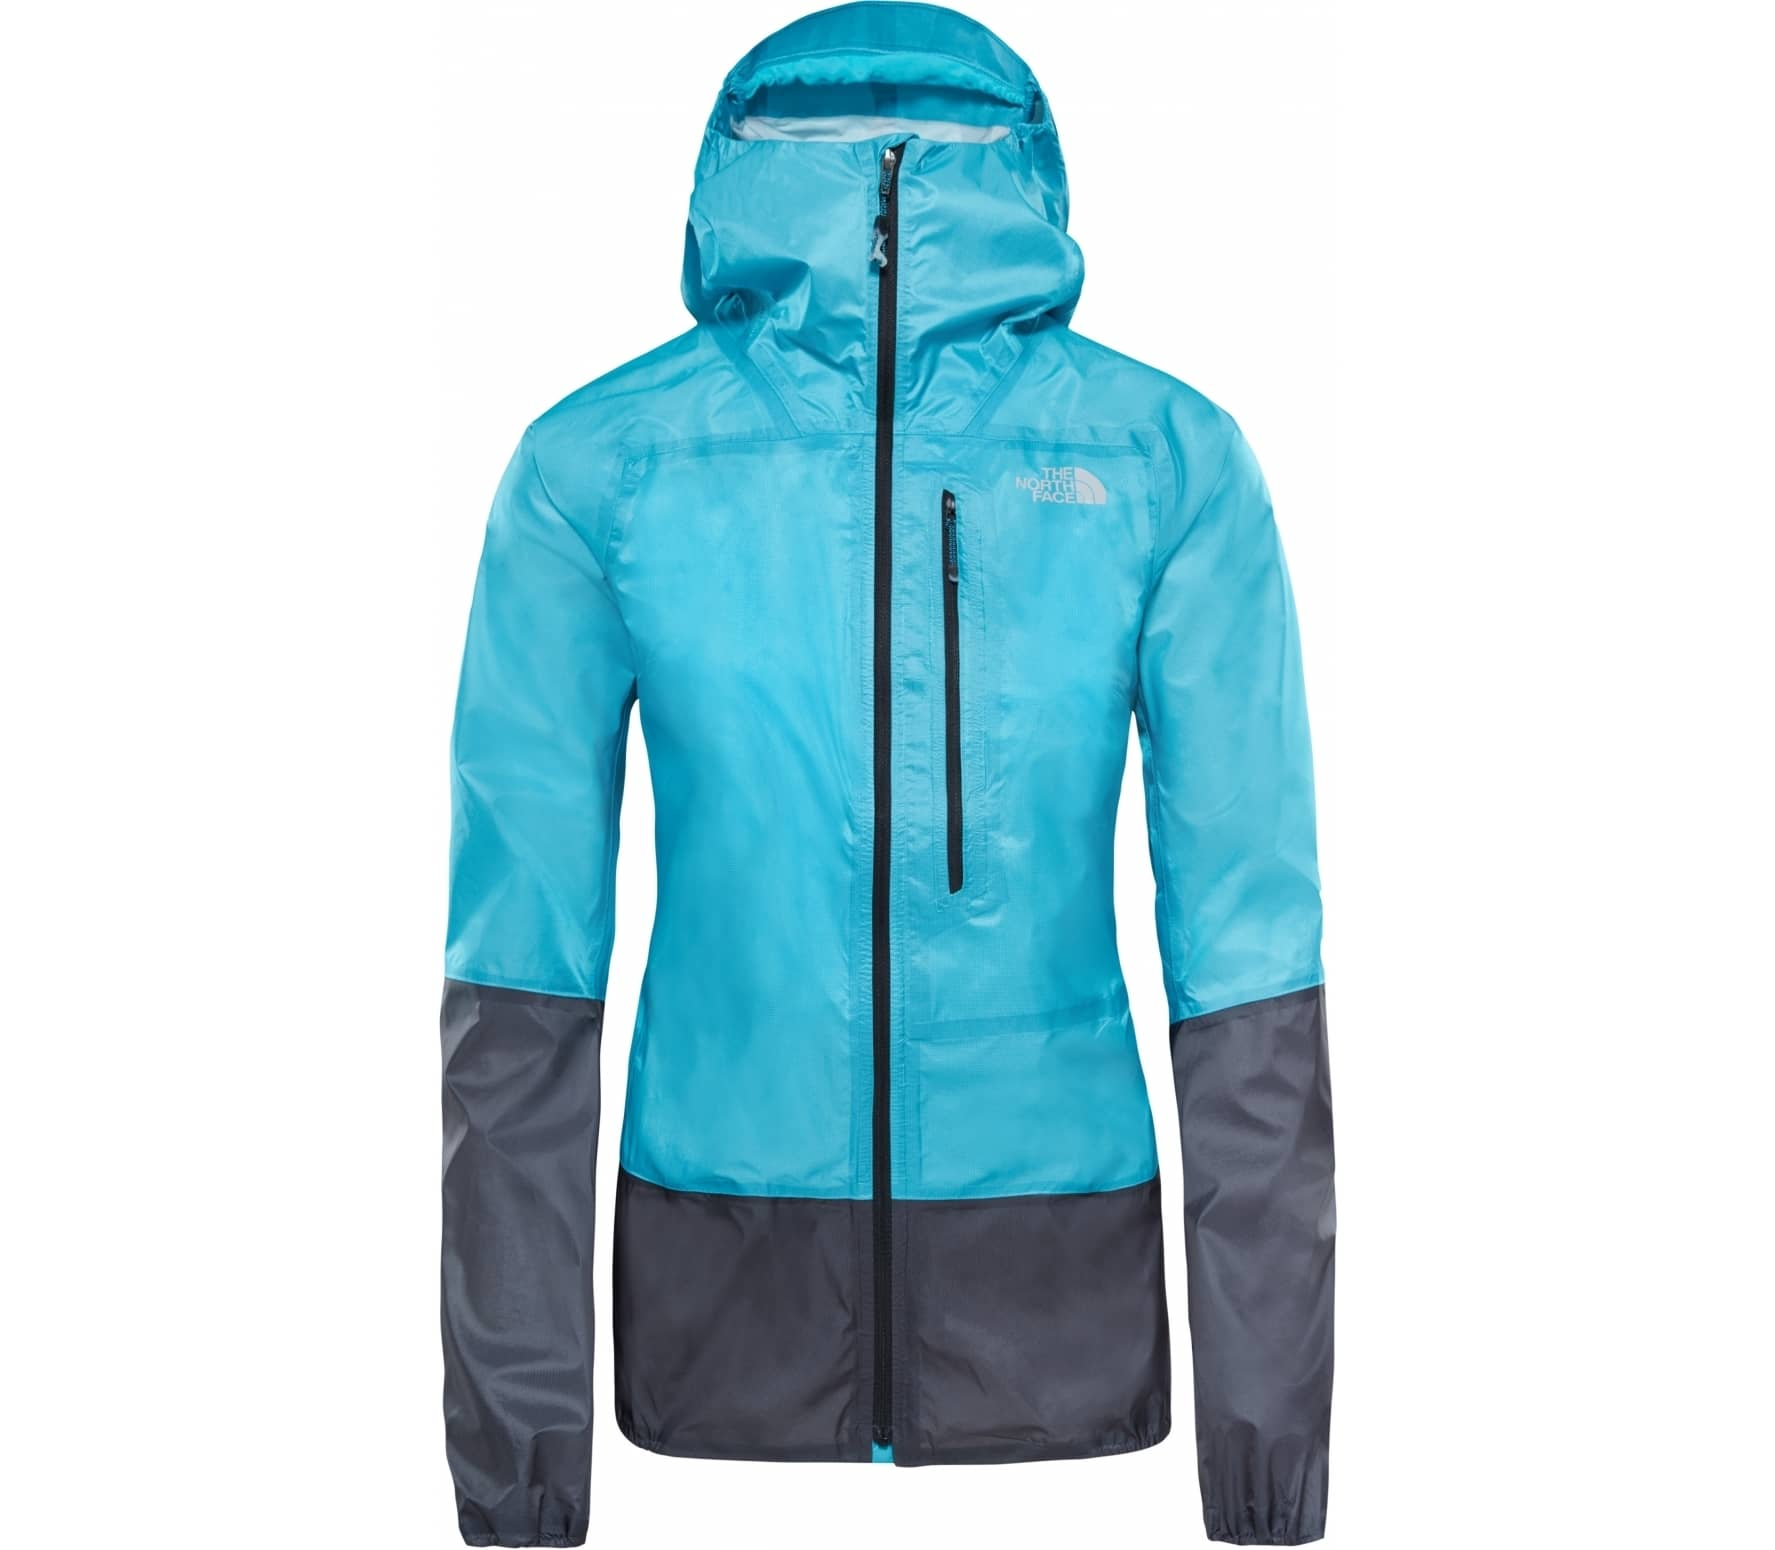 cbc1b4fc The North Face Summit L5 Ultralight Storm women's hardshell jacket Women